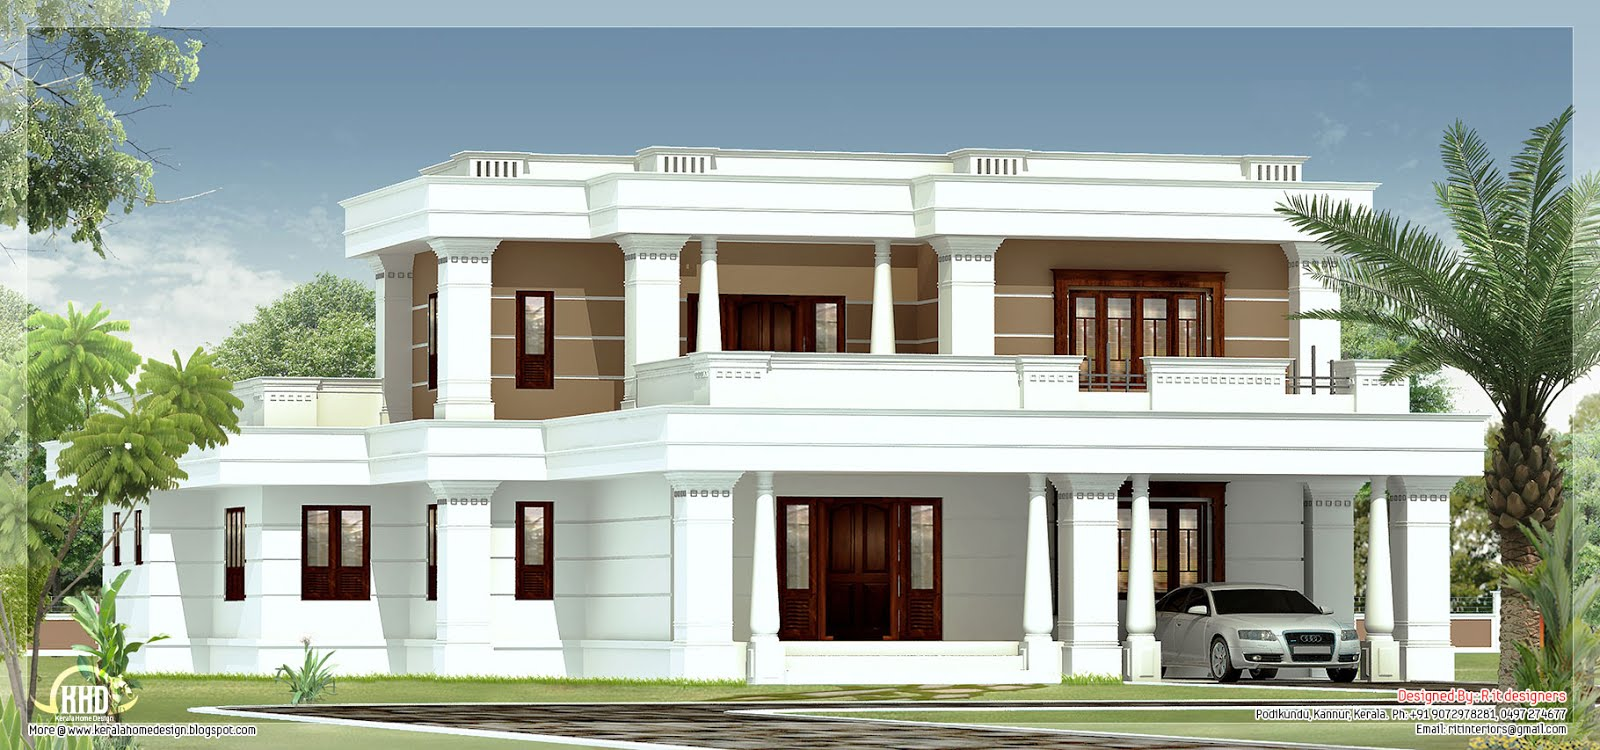 4 bedroom flat roof villa house design plans Plans for villas